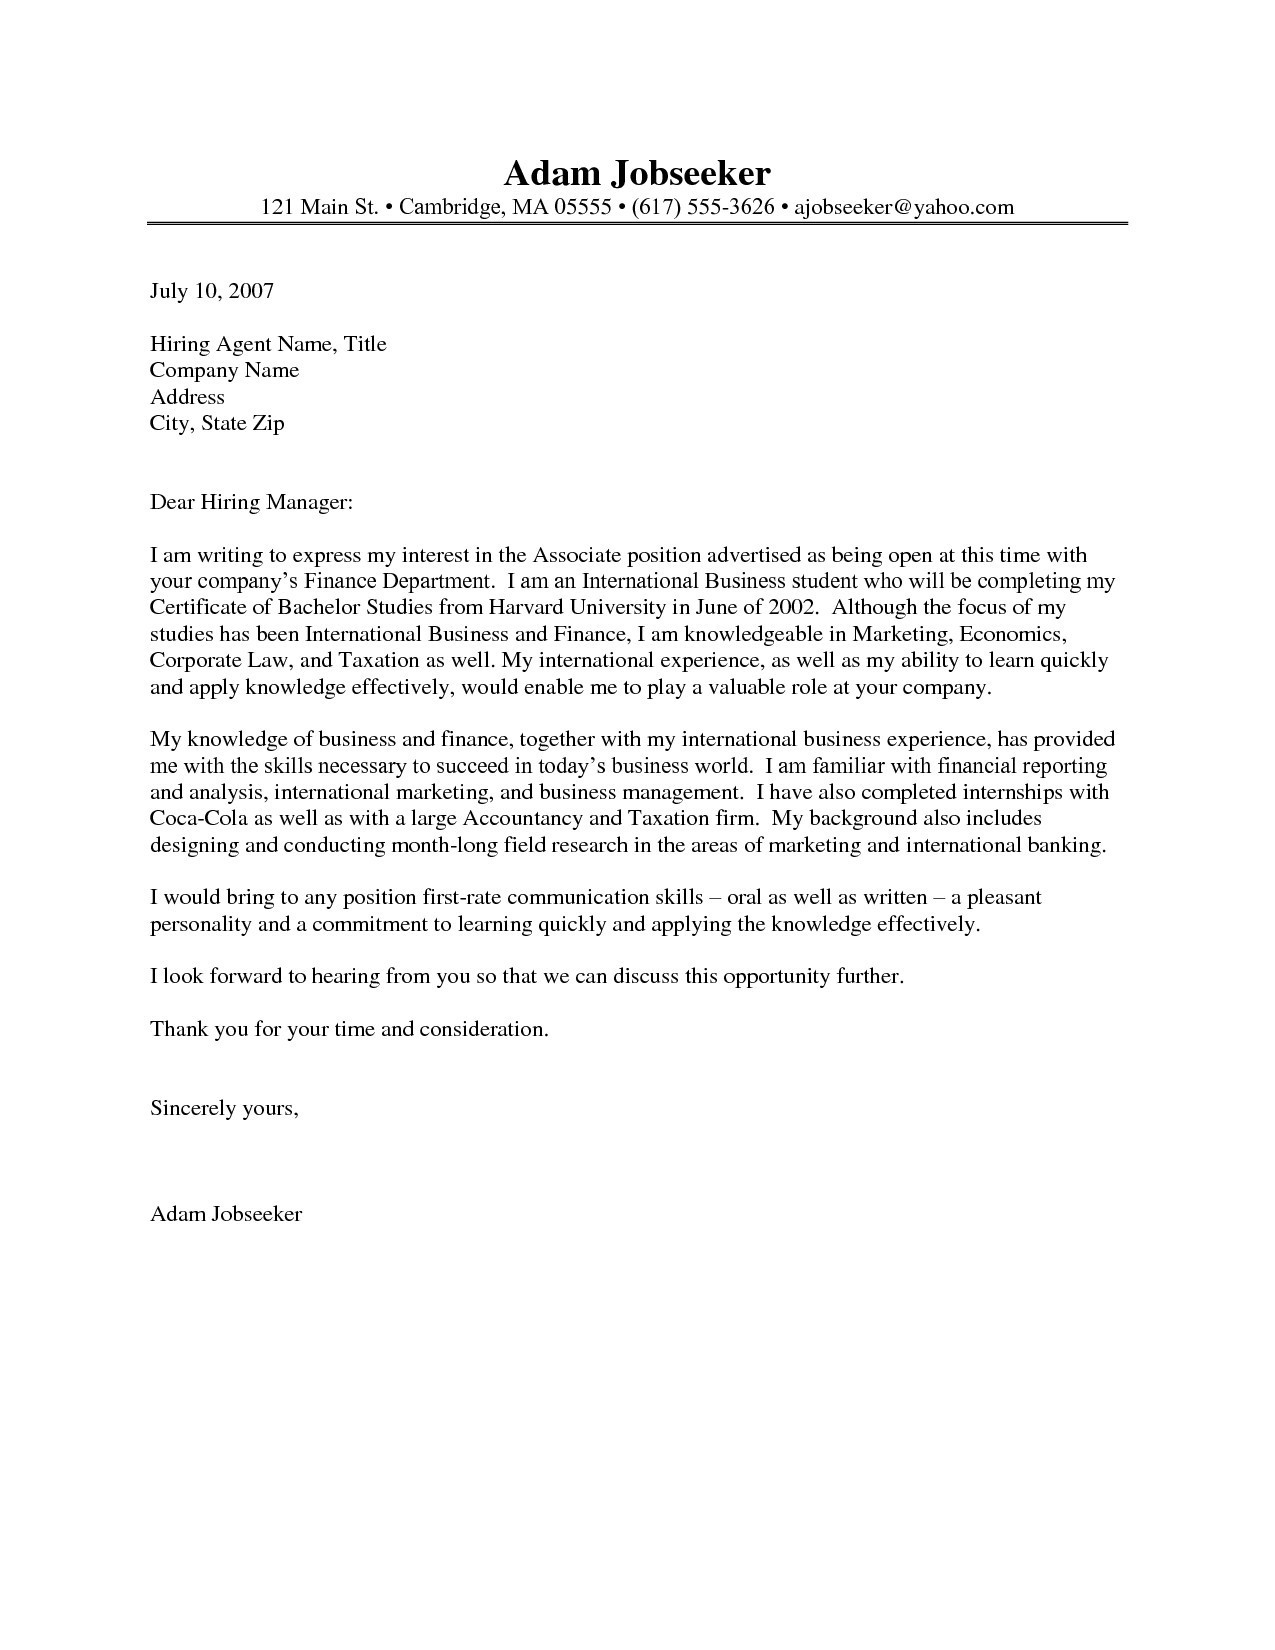 Hiring Letter Template - Sample Cover Letter for State Job Best Cover Letter Examples for